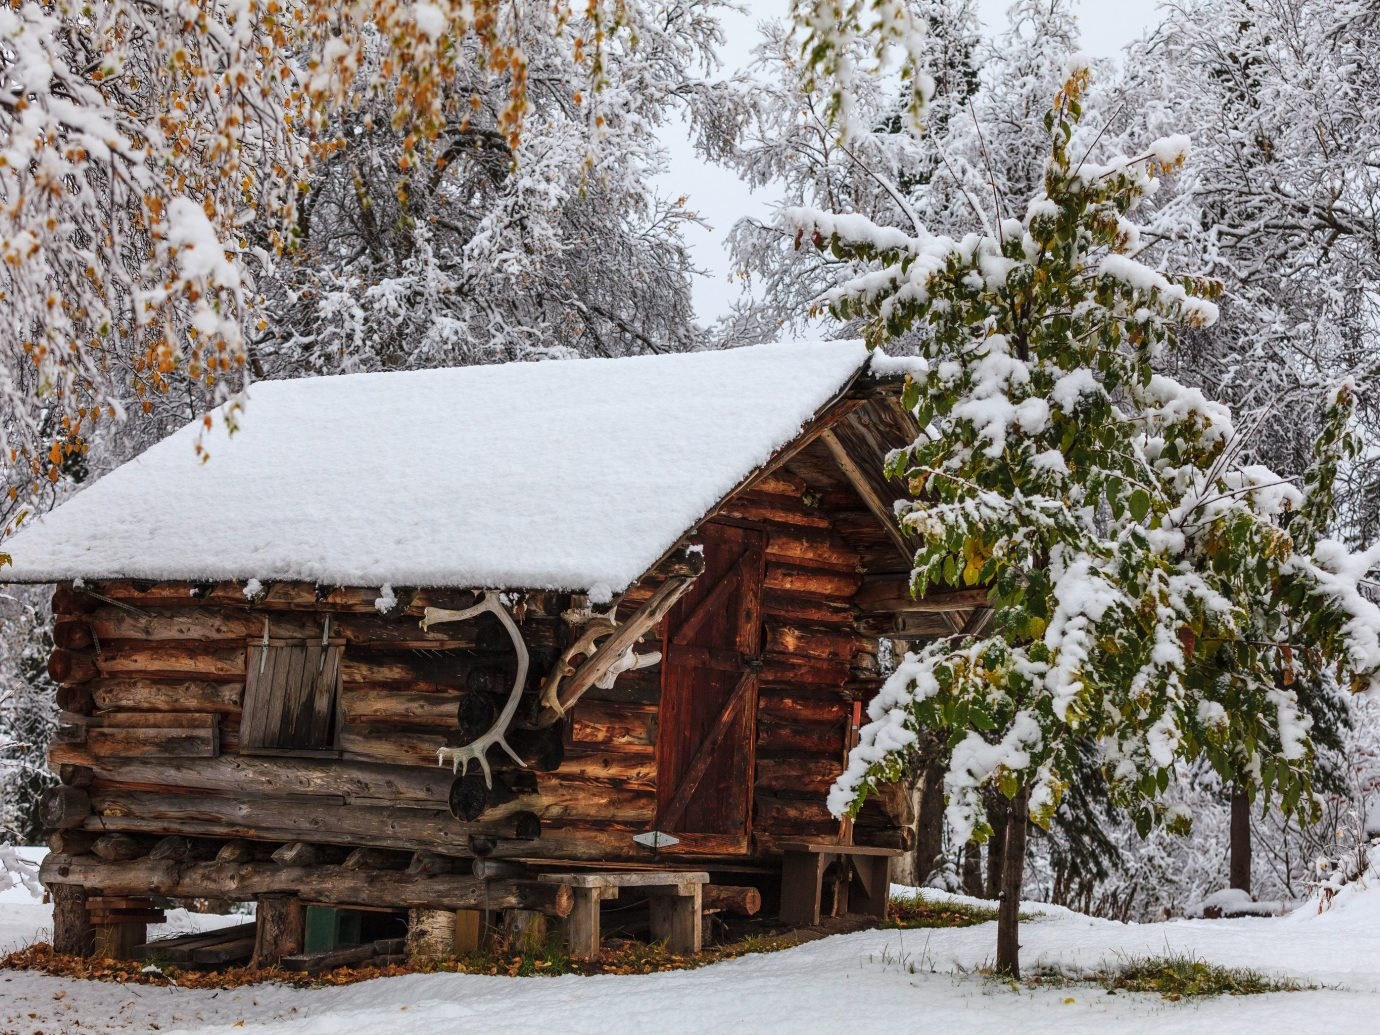 Trip Ideas tree snow outdoor Winter weather building house season hut log cabin sugar house rural area shack wooden wood surrounded